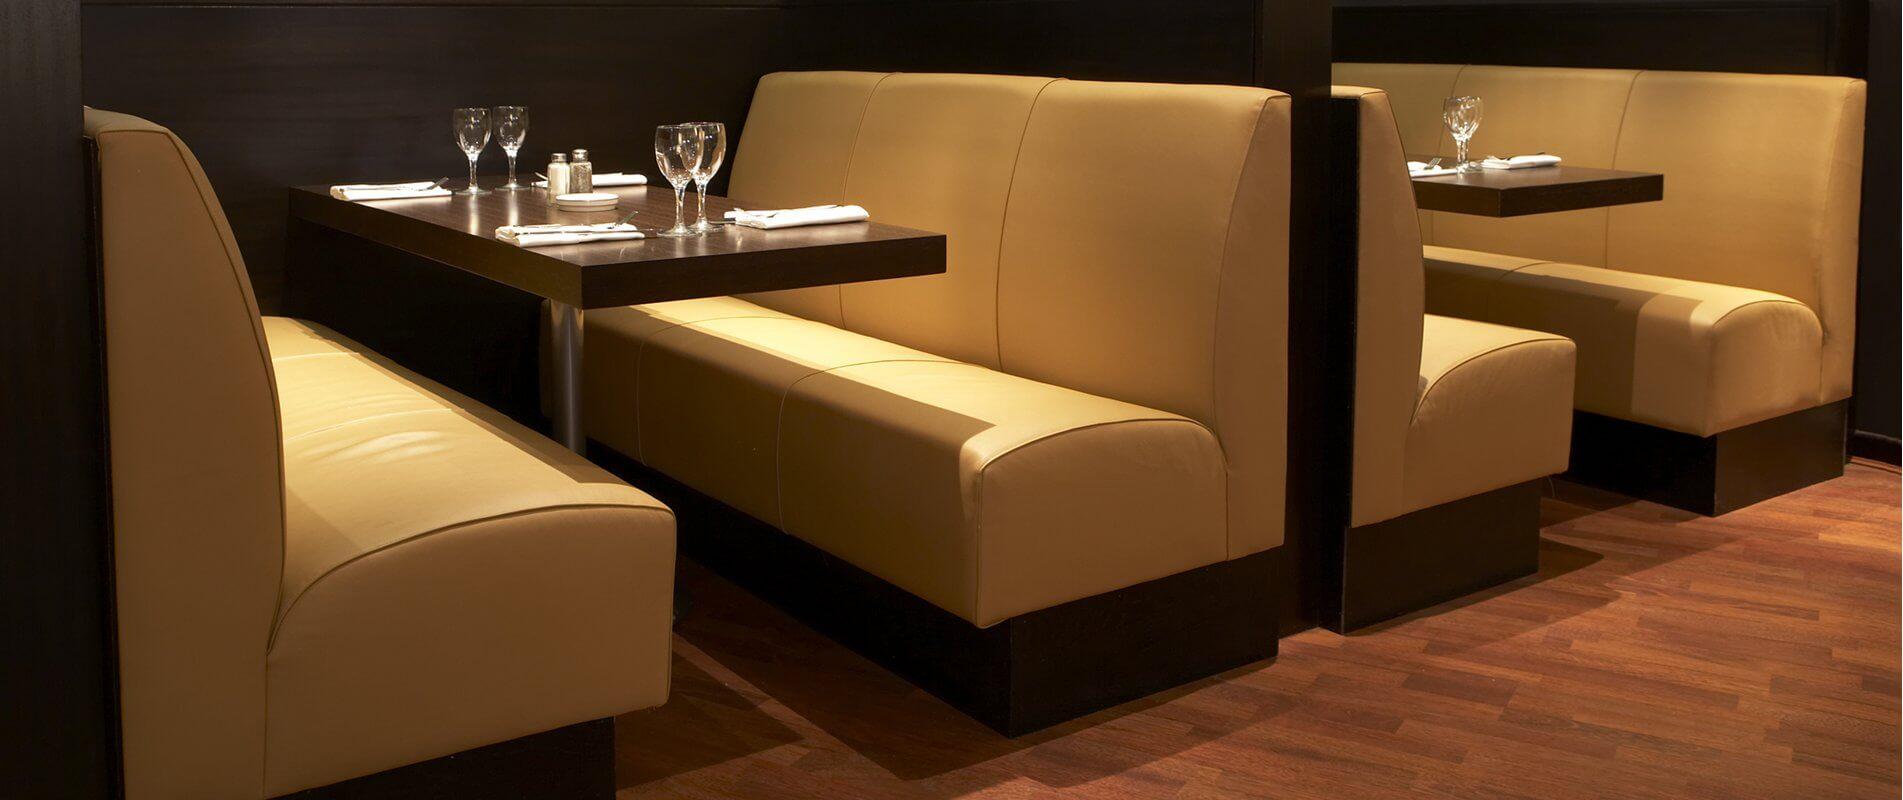 Booth Seating Melbourne Anm Cafe Amp Hospitality Furniture